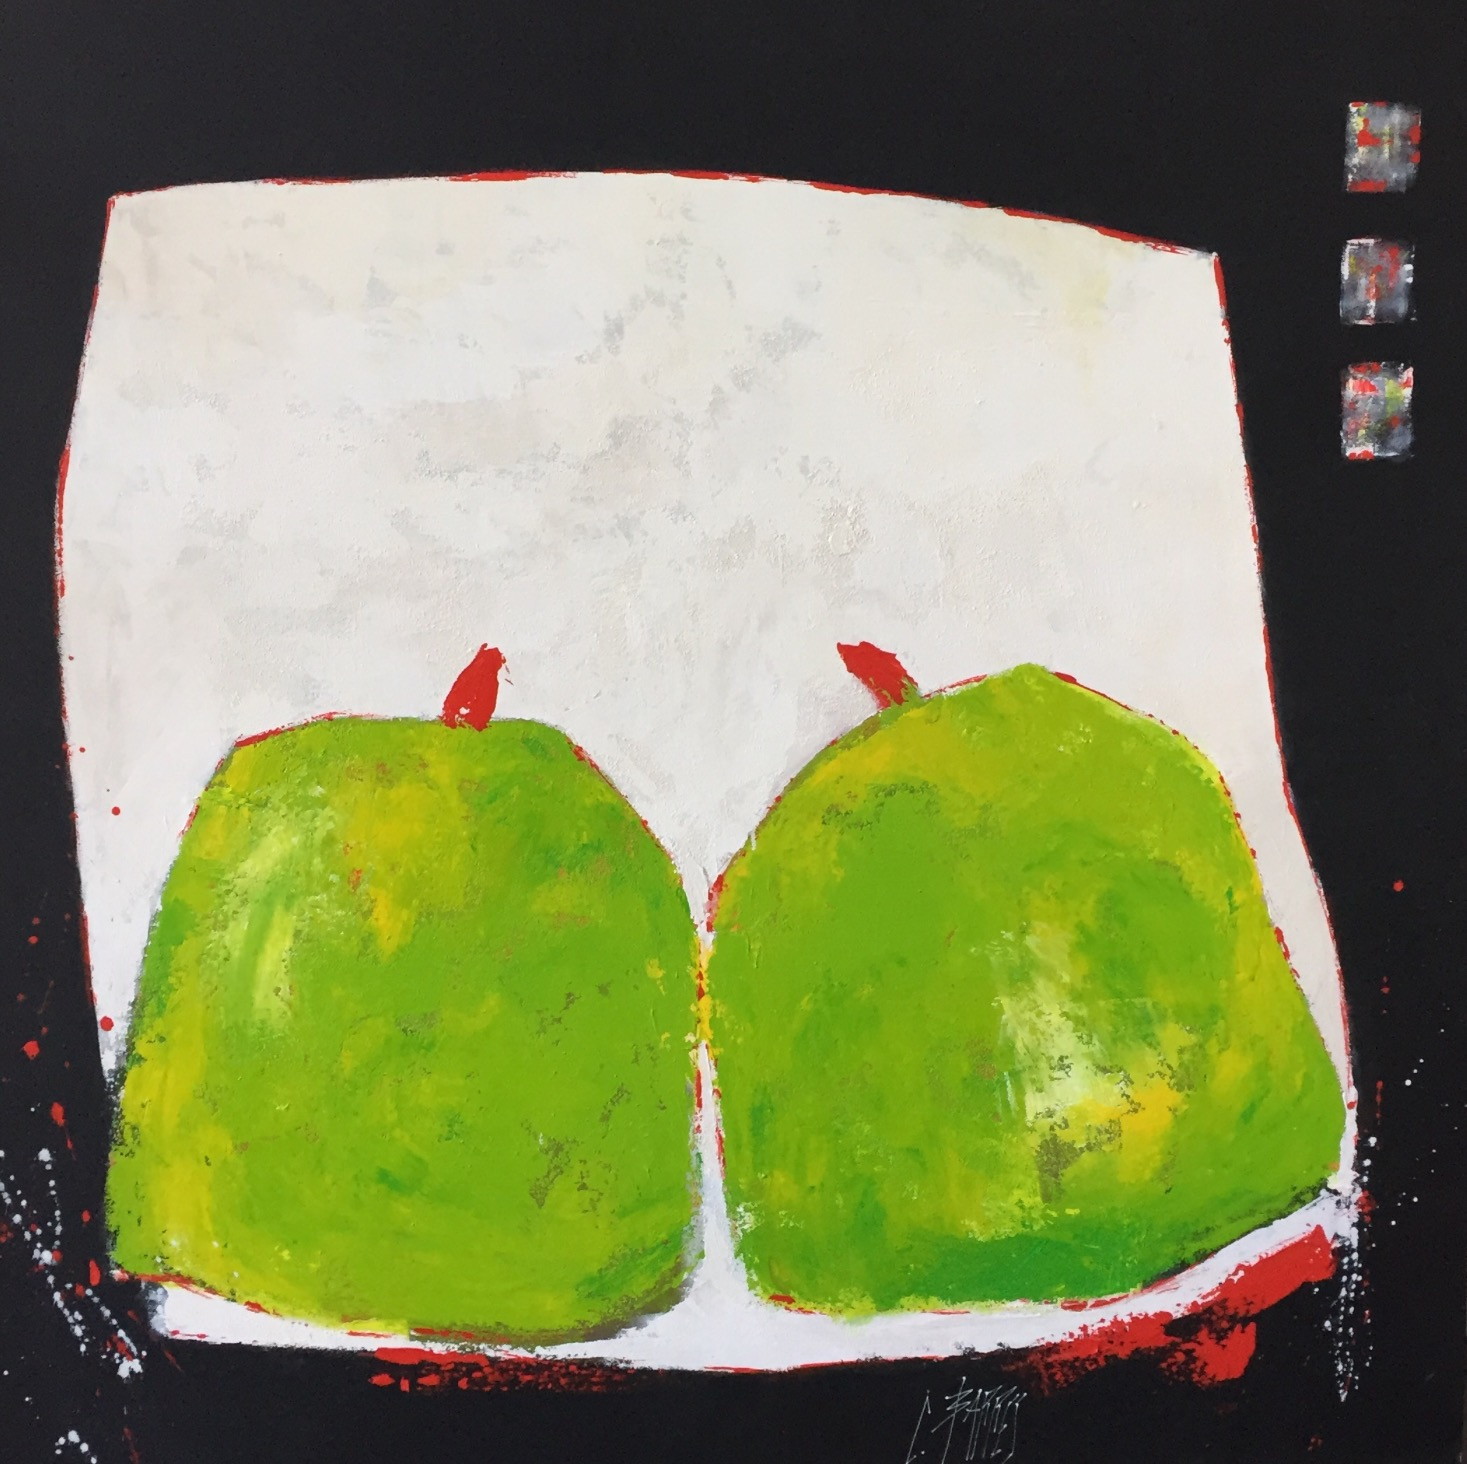 Christine Barrès - Série Fruits - Peinture Fruits